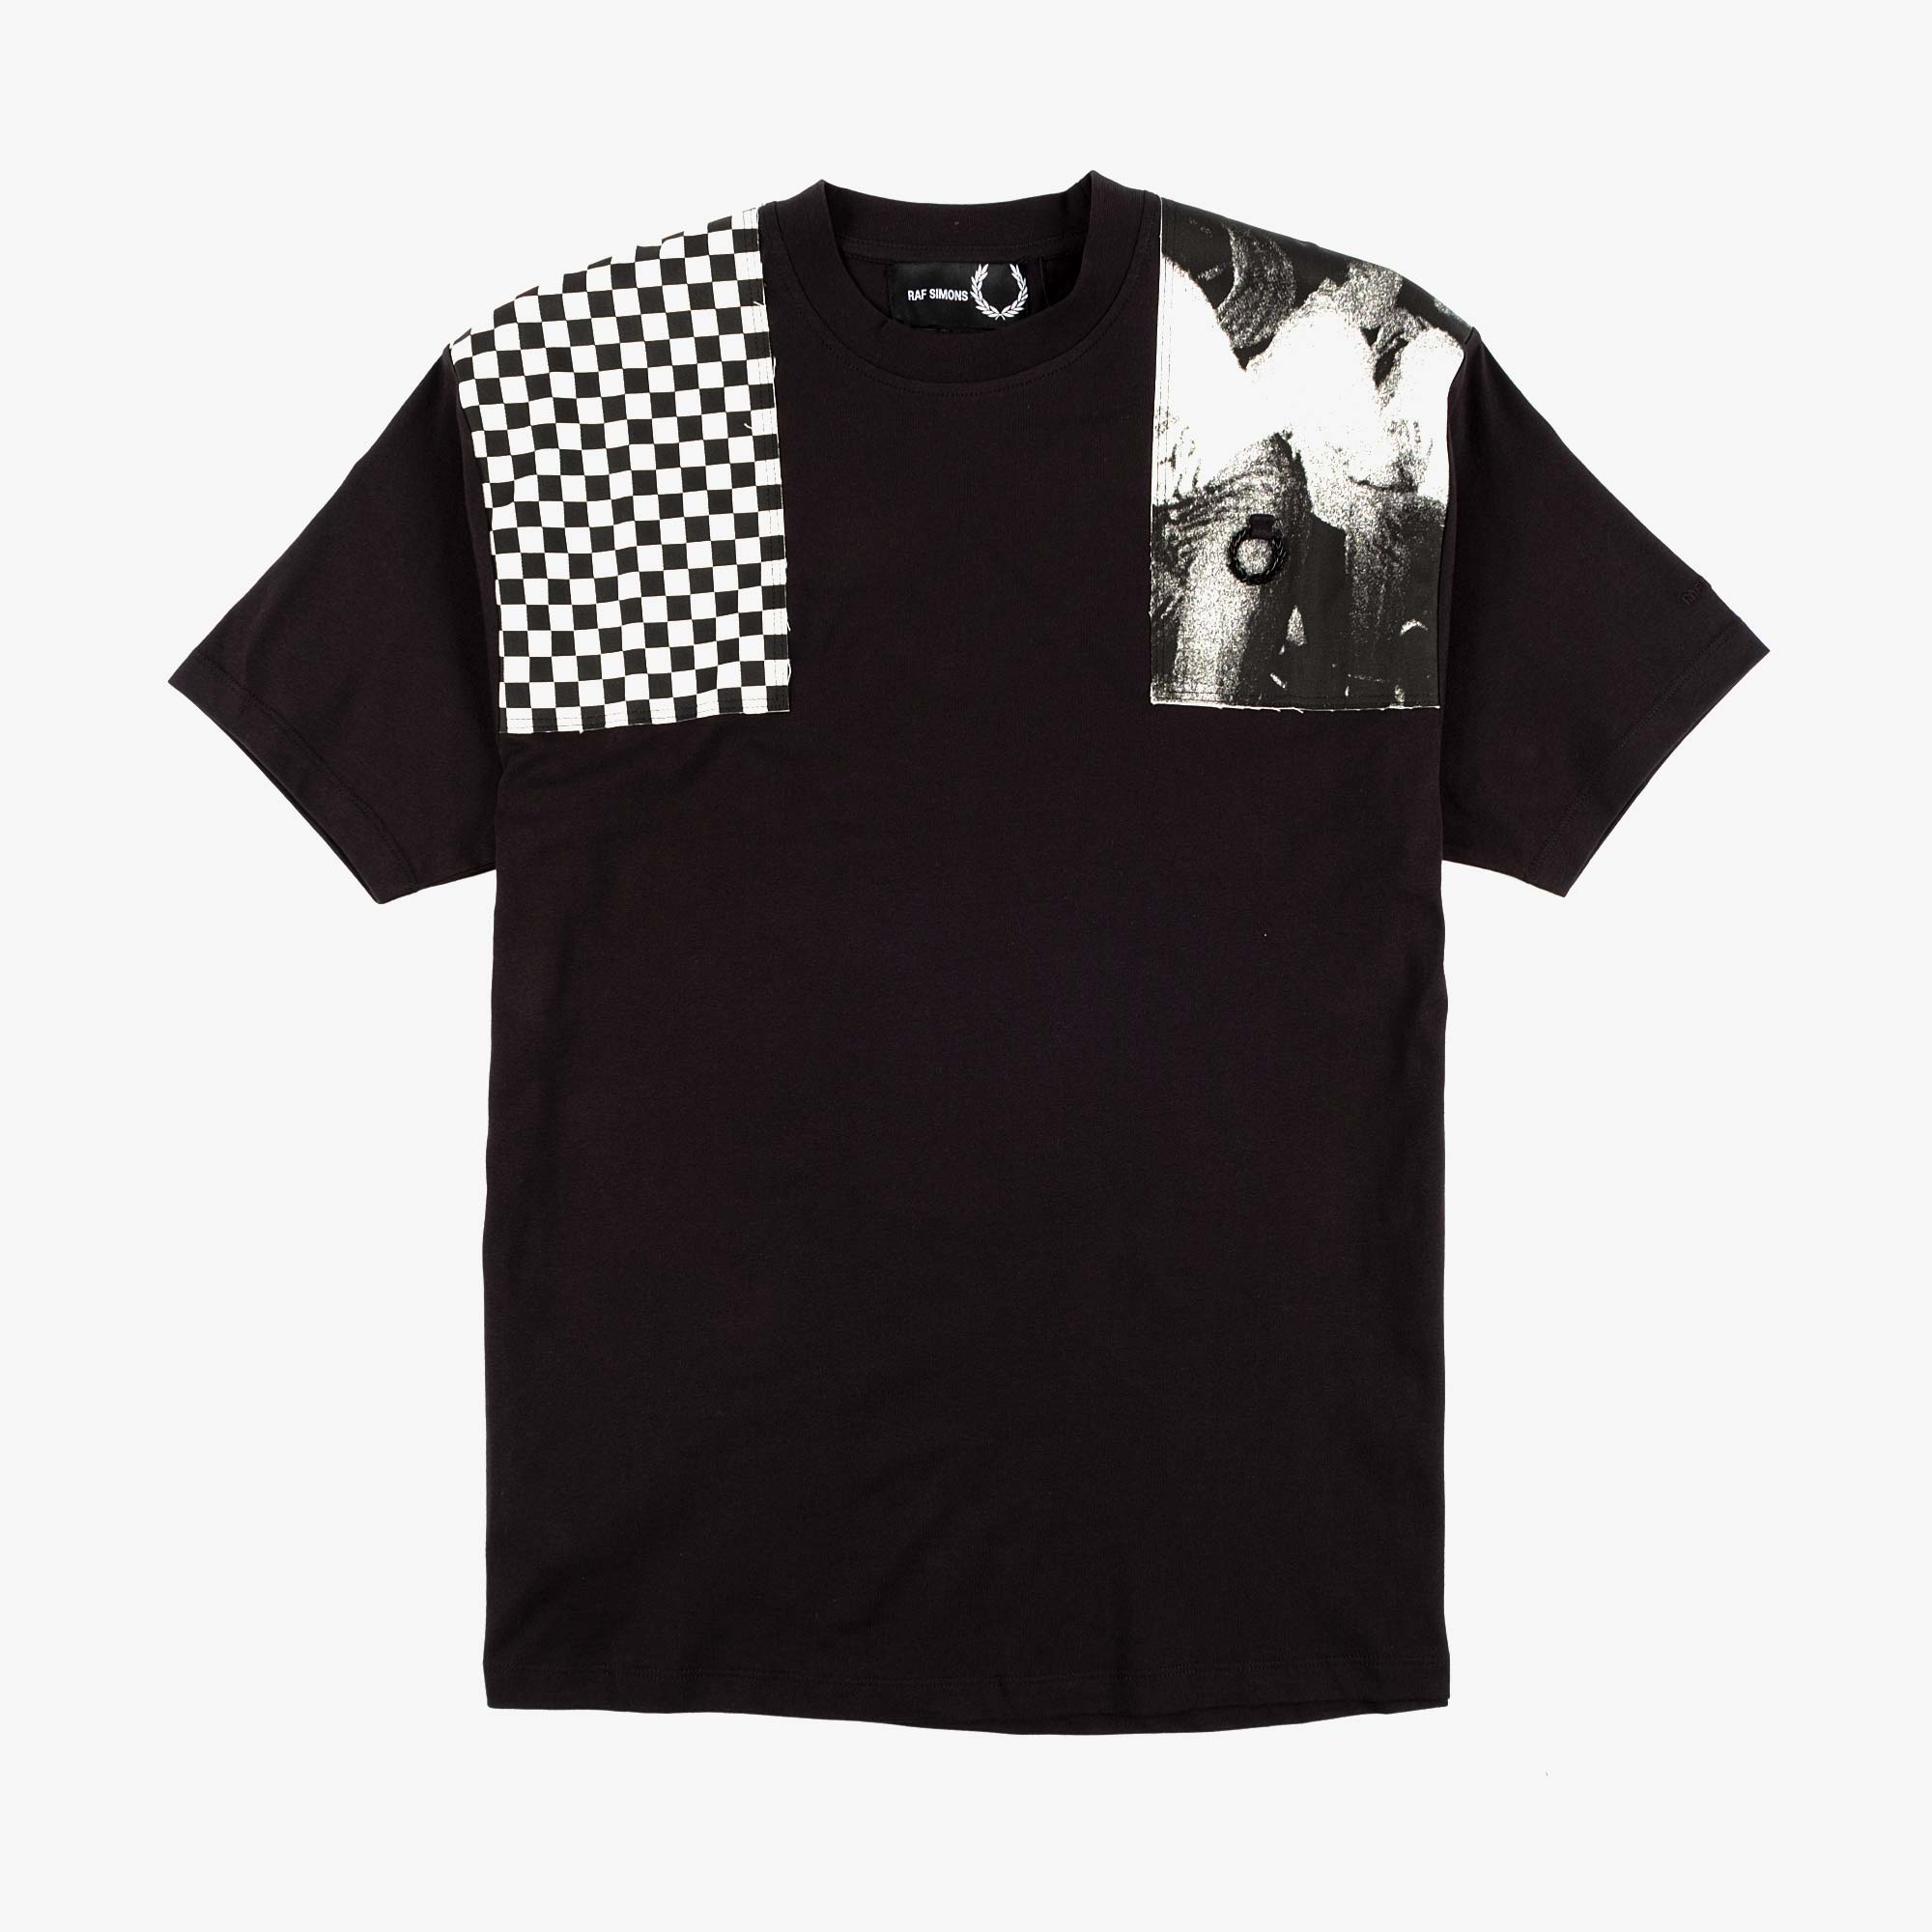 Fred Perry X Raf Simons Oversized Printed Patch Tee - Black 1